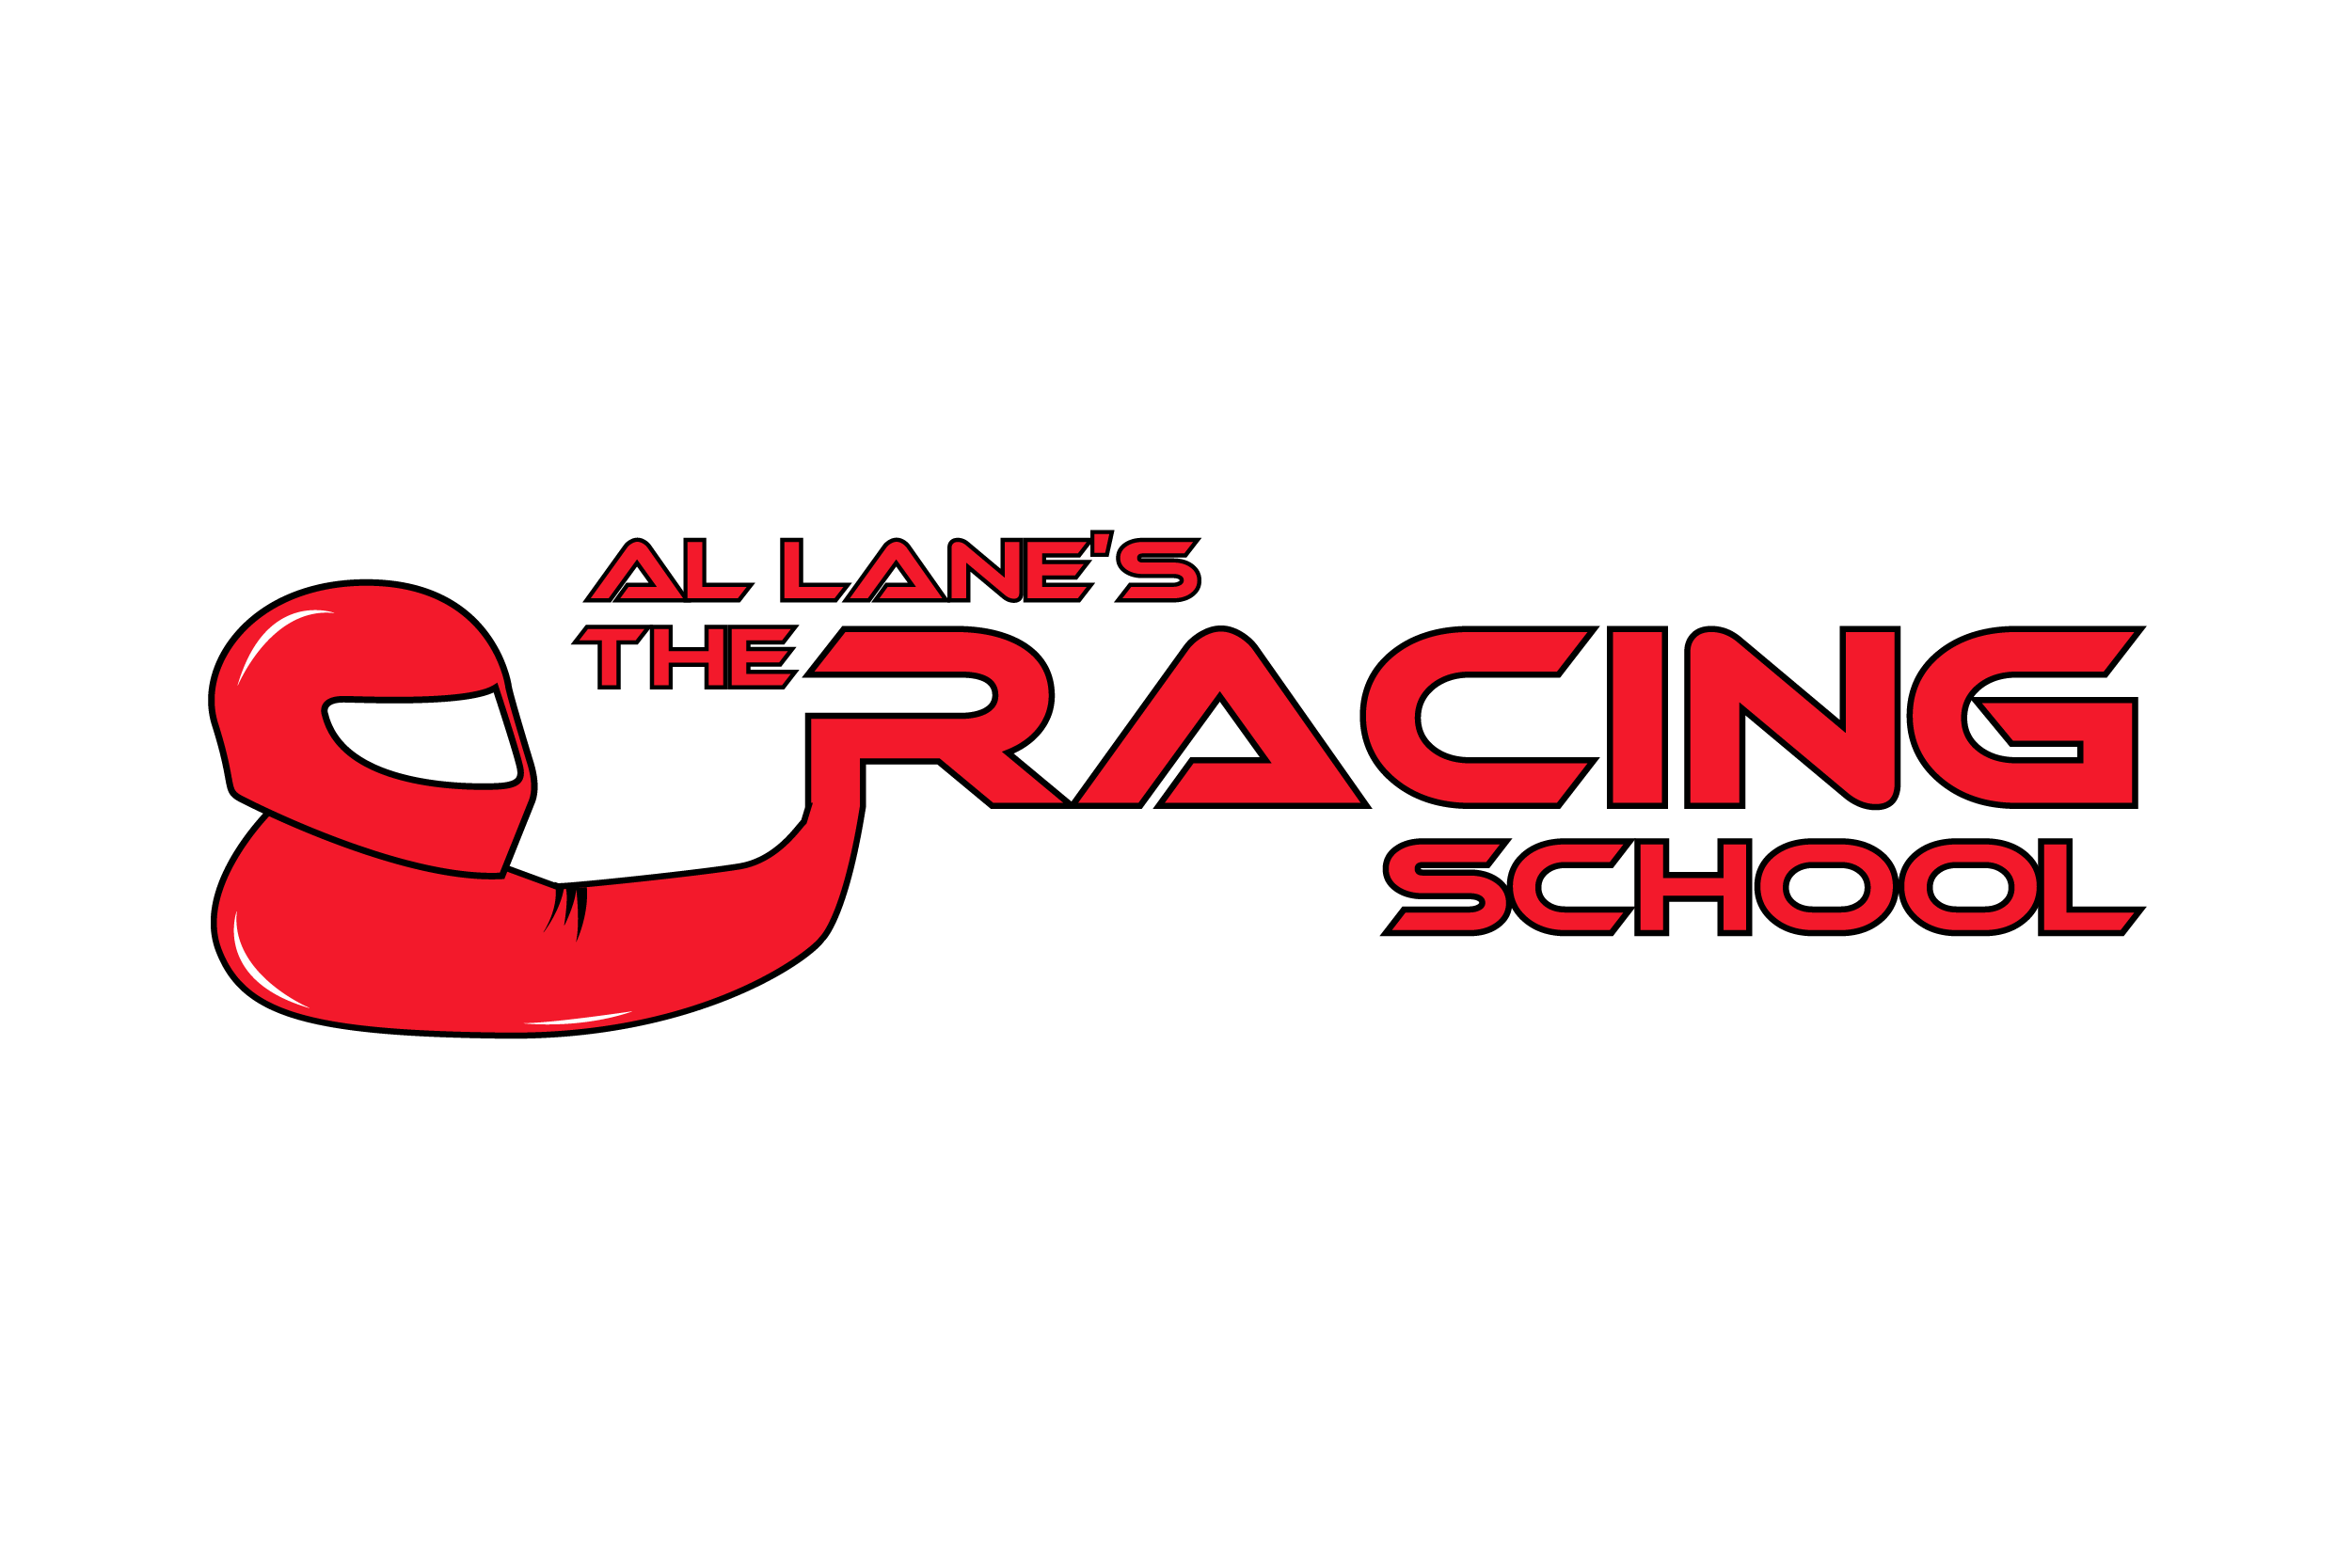 al lanes the racing school logo png.png